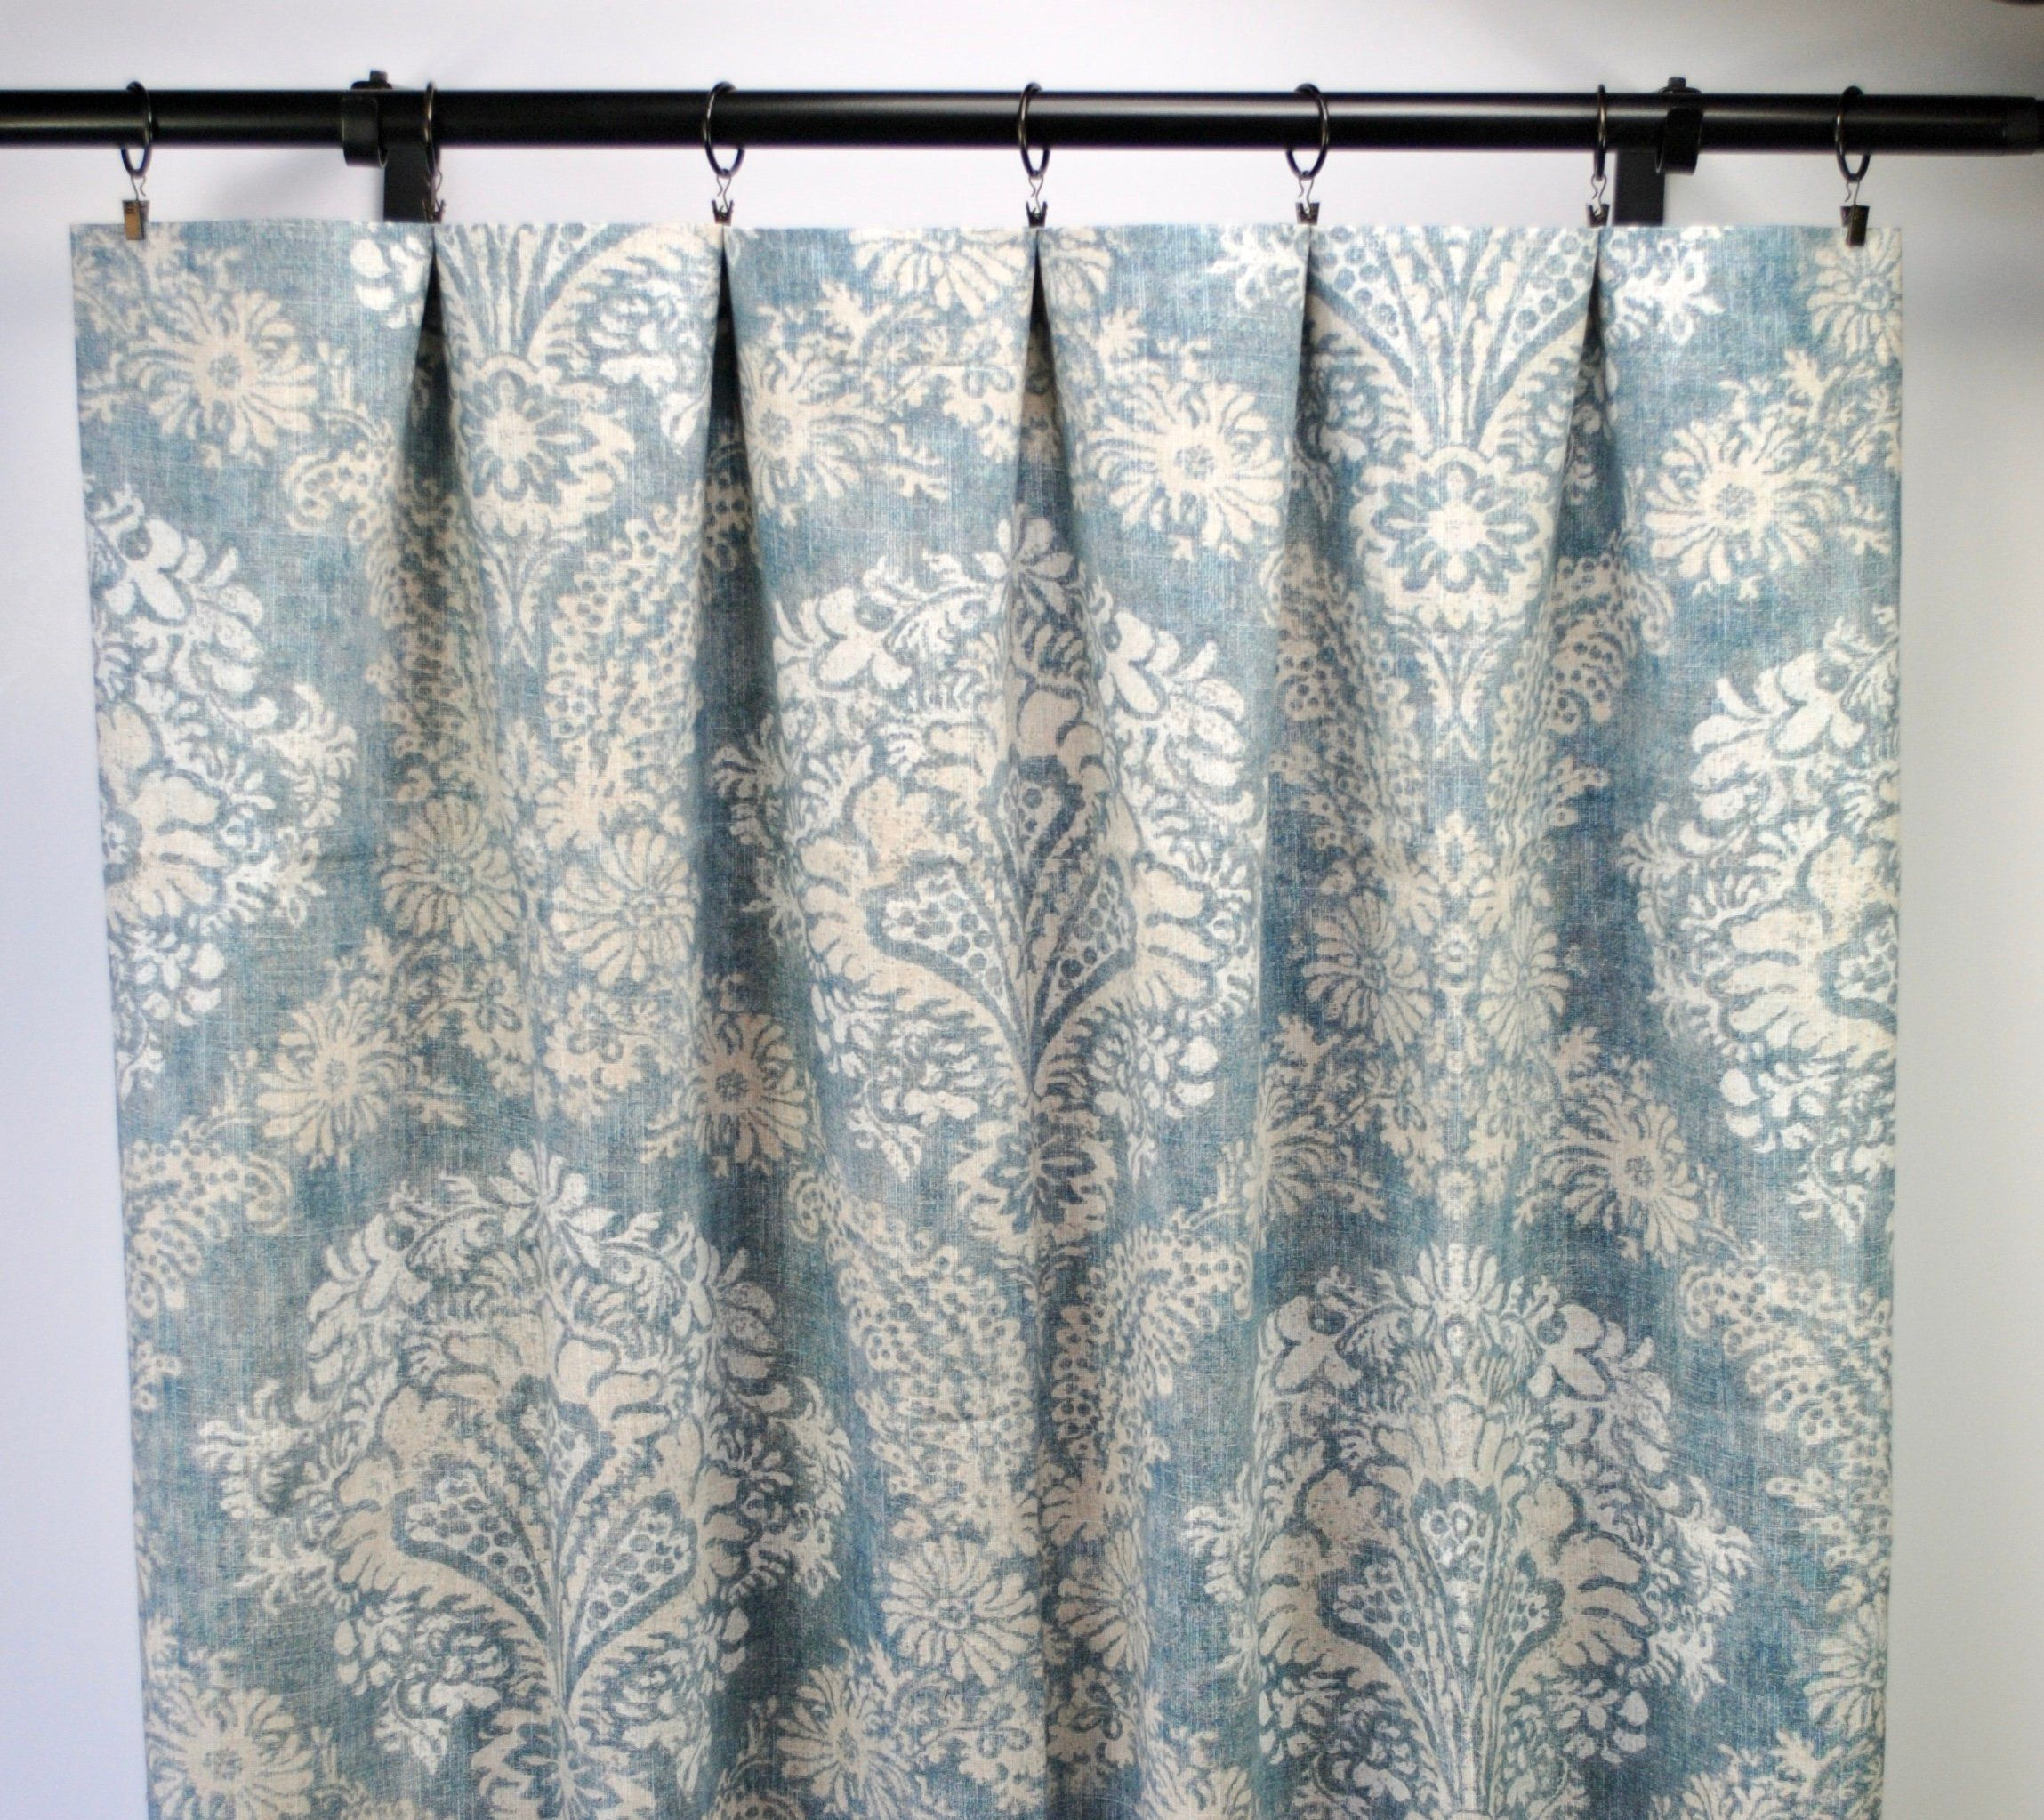 Magnolia Curtains Floral Curtain Blue 2 Panels Home